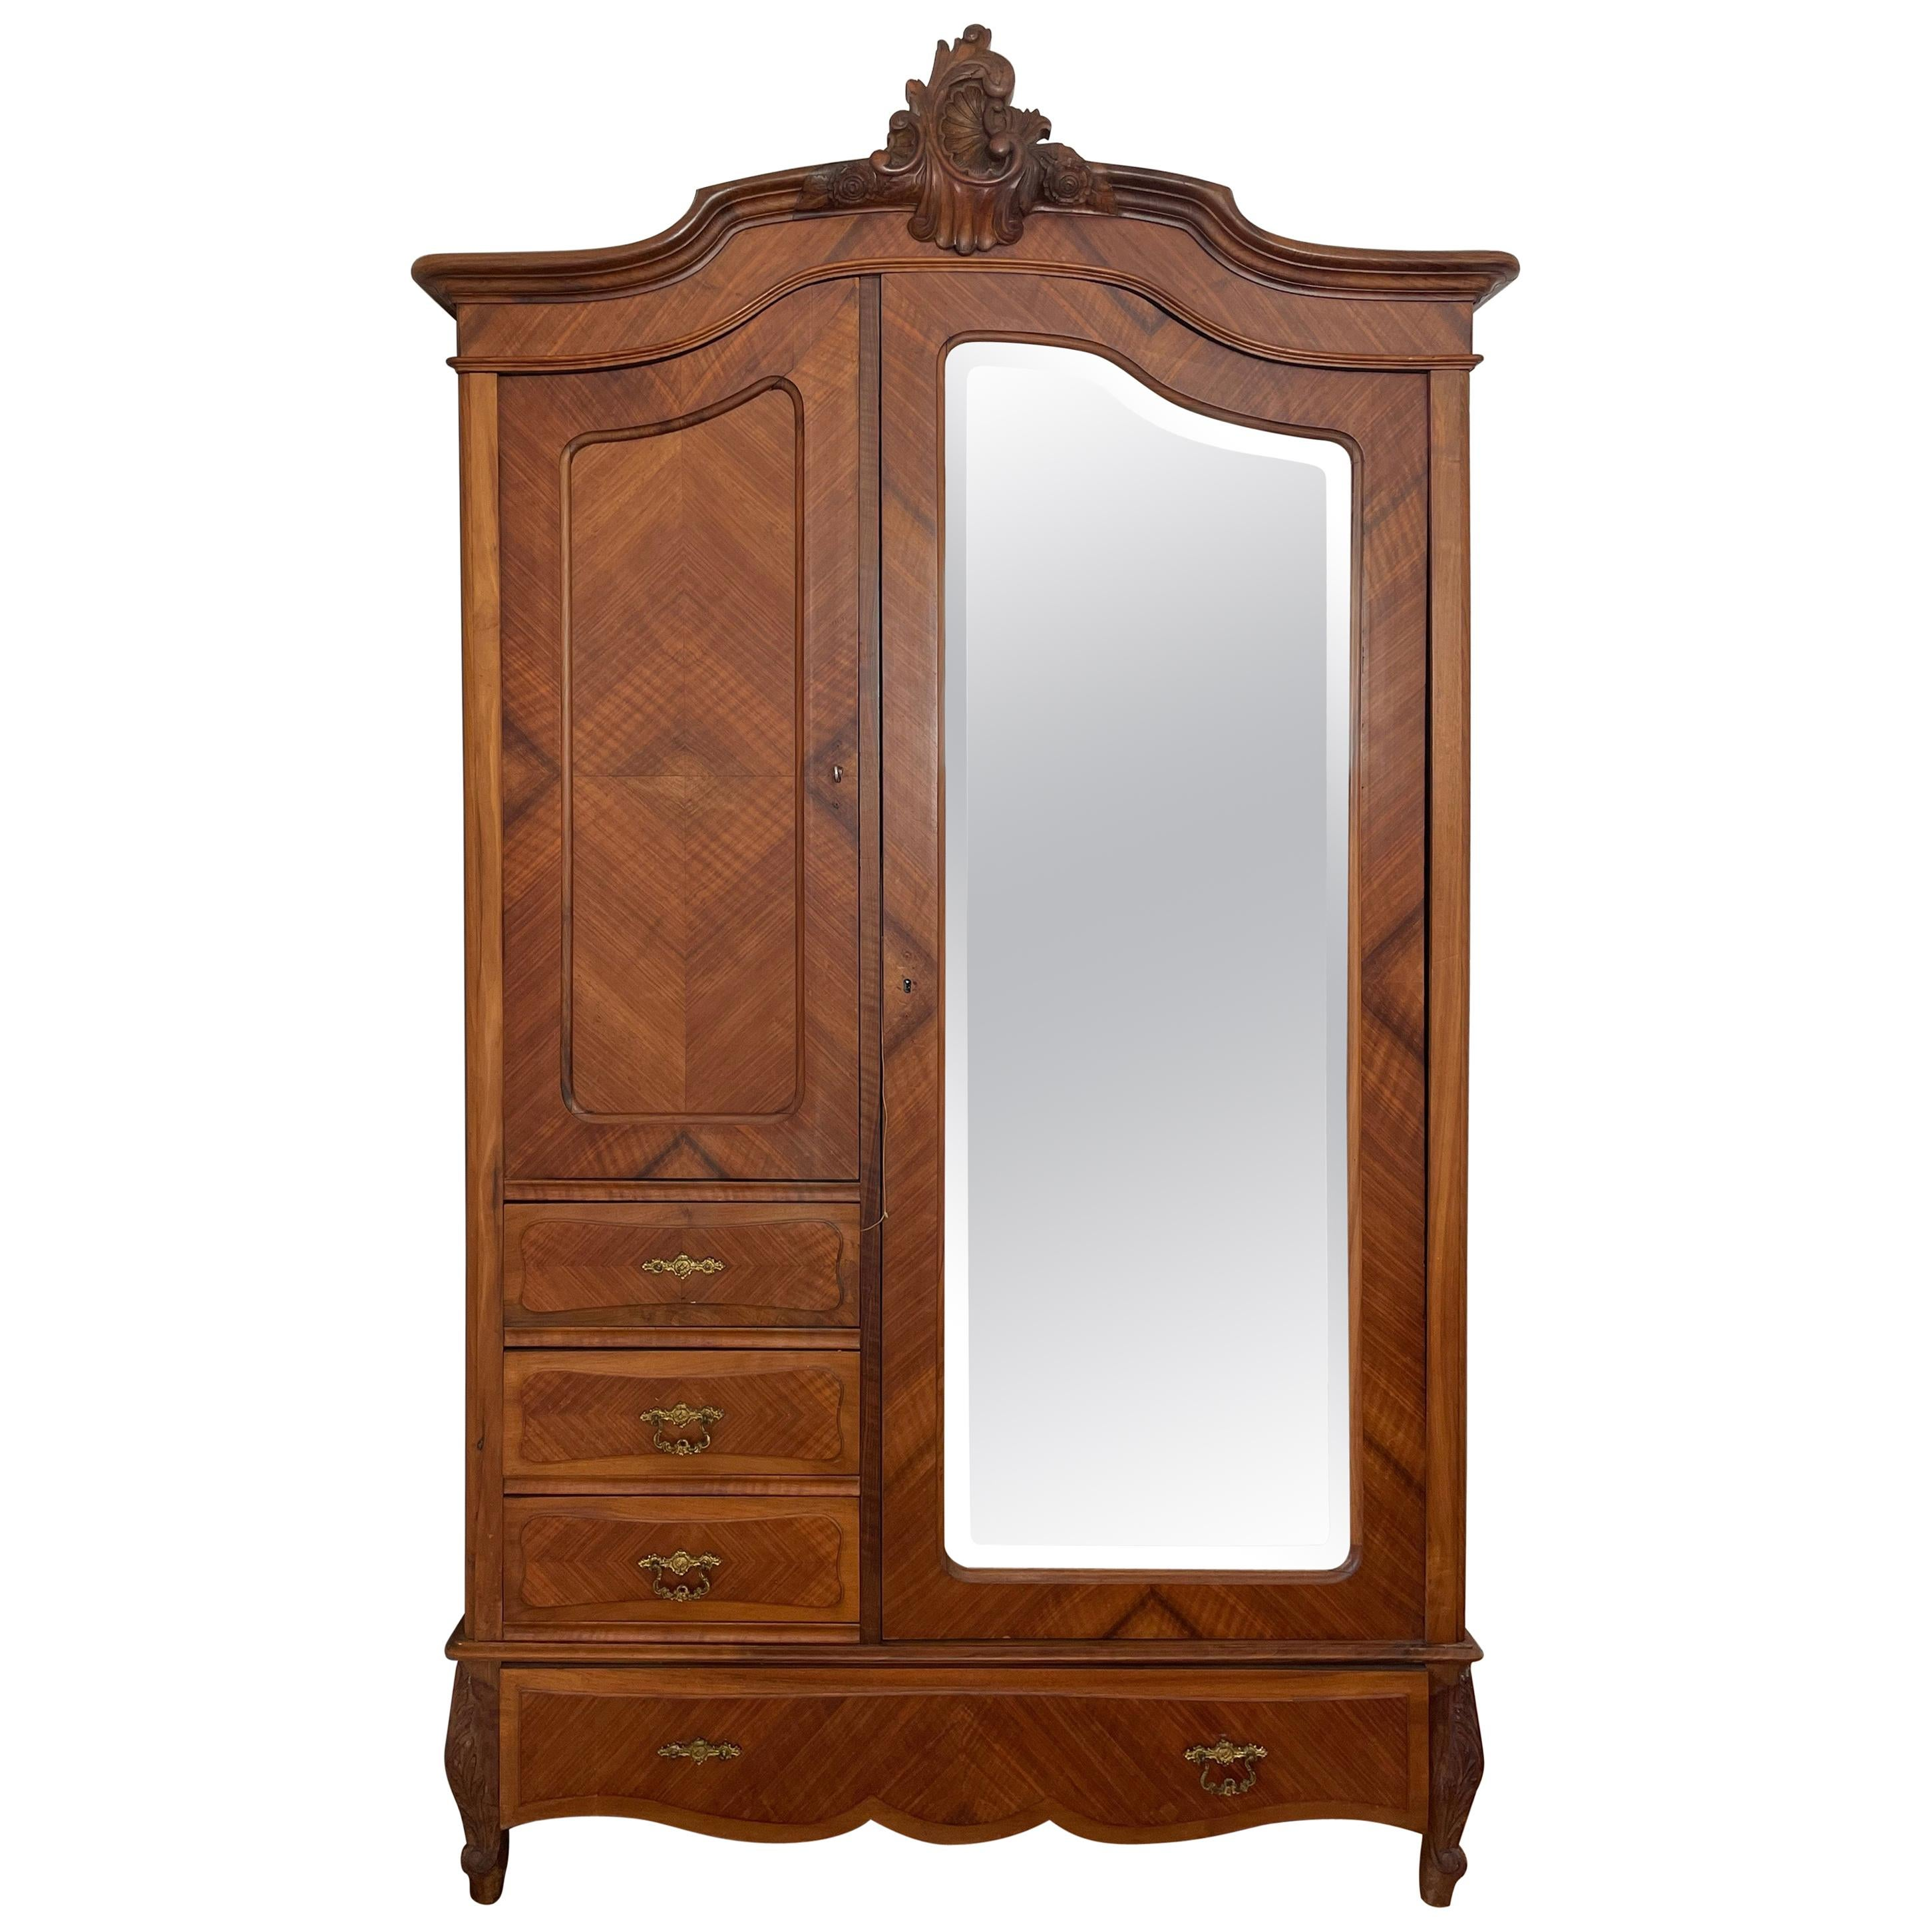 Carved Walnut Louis XV Style Armoire / Wardrobe with Mirror, France, circa 1900